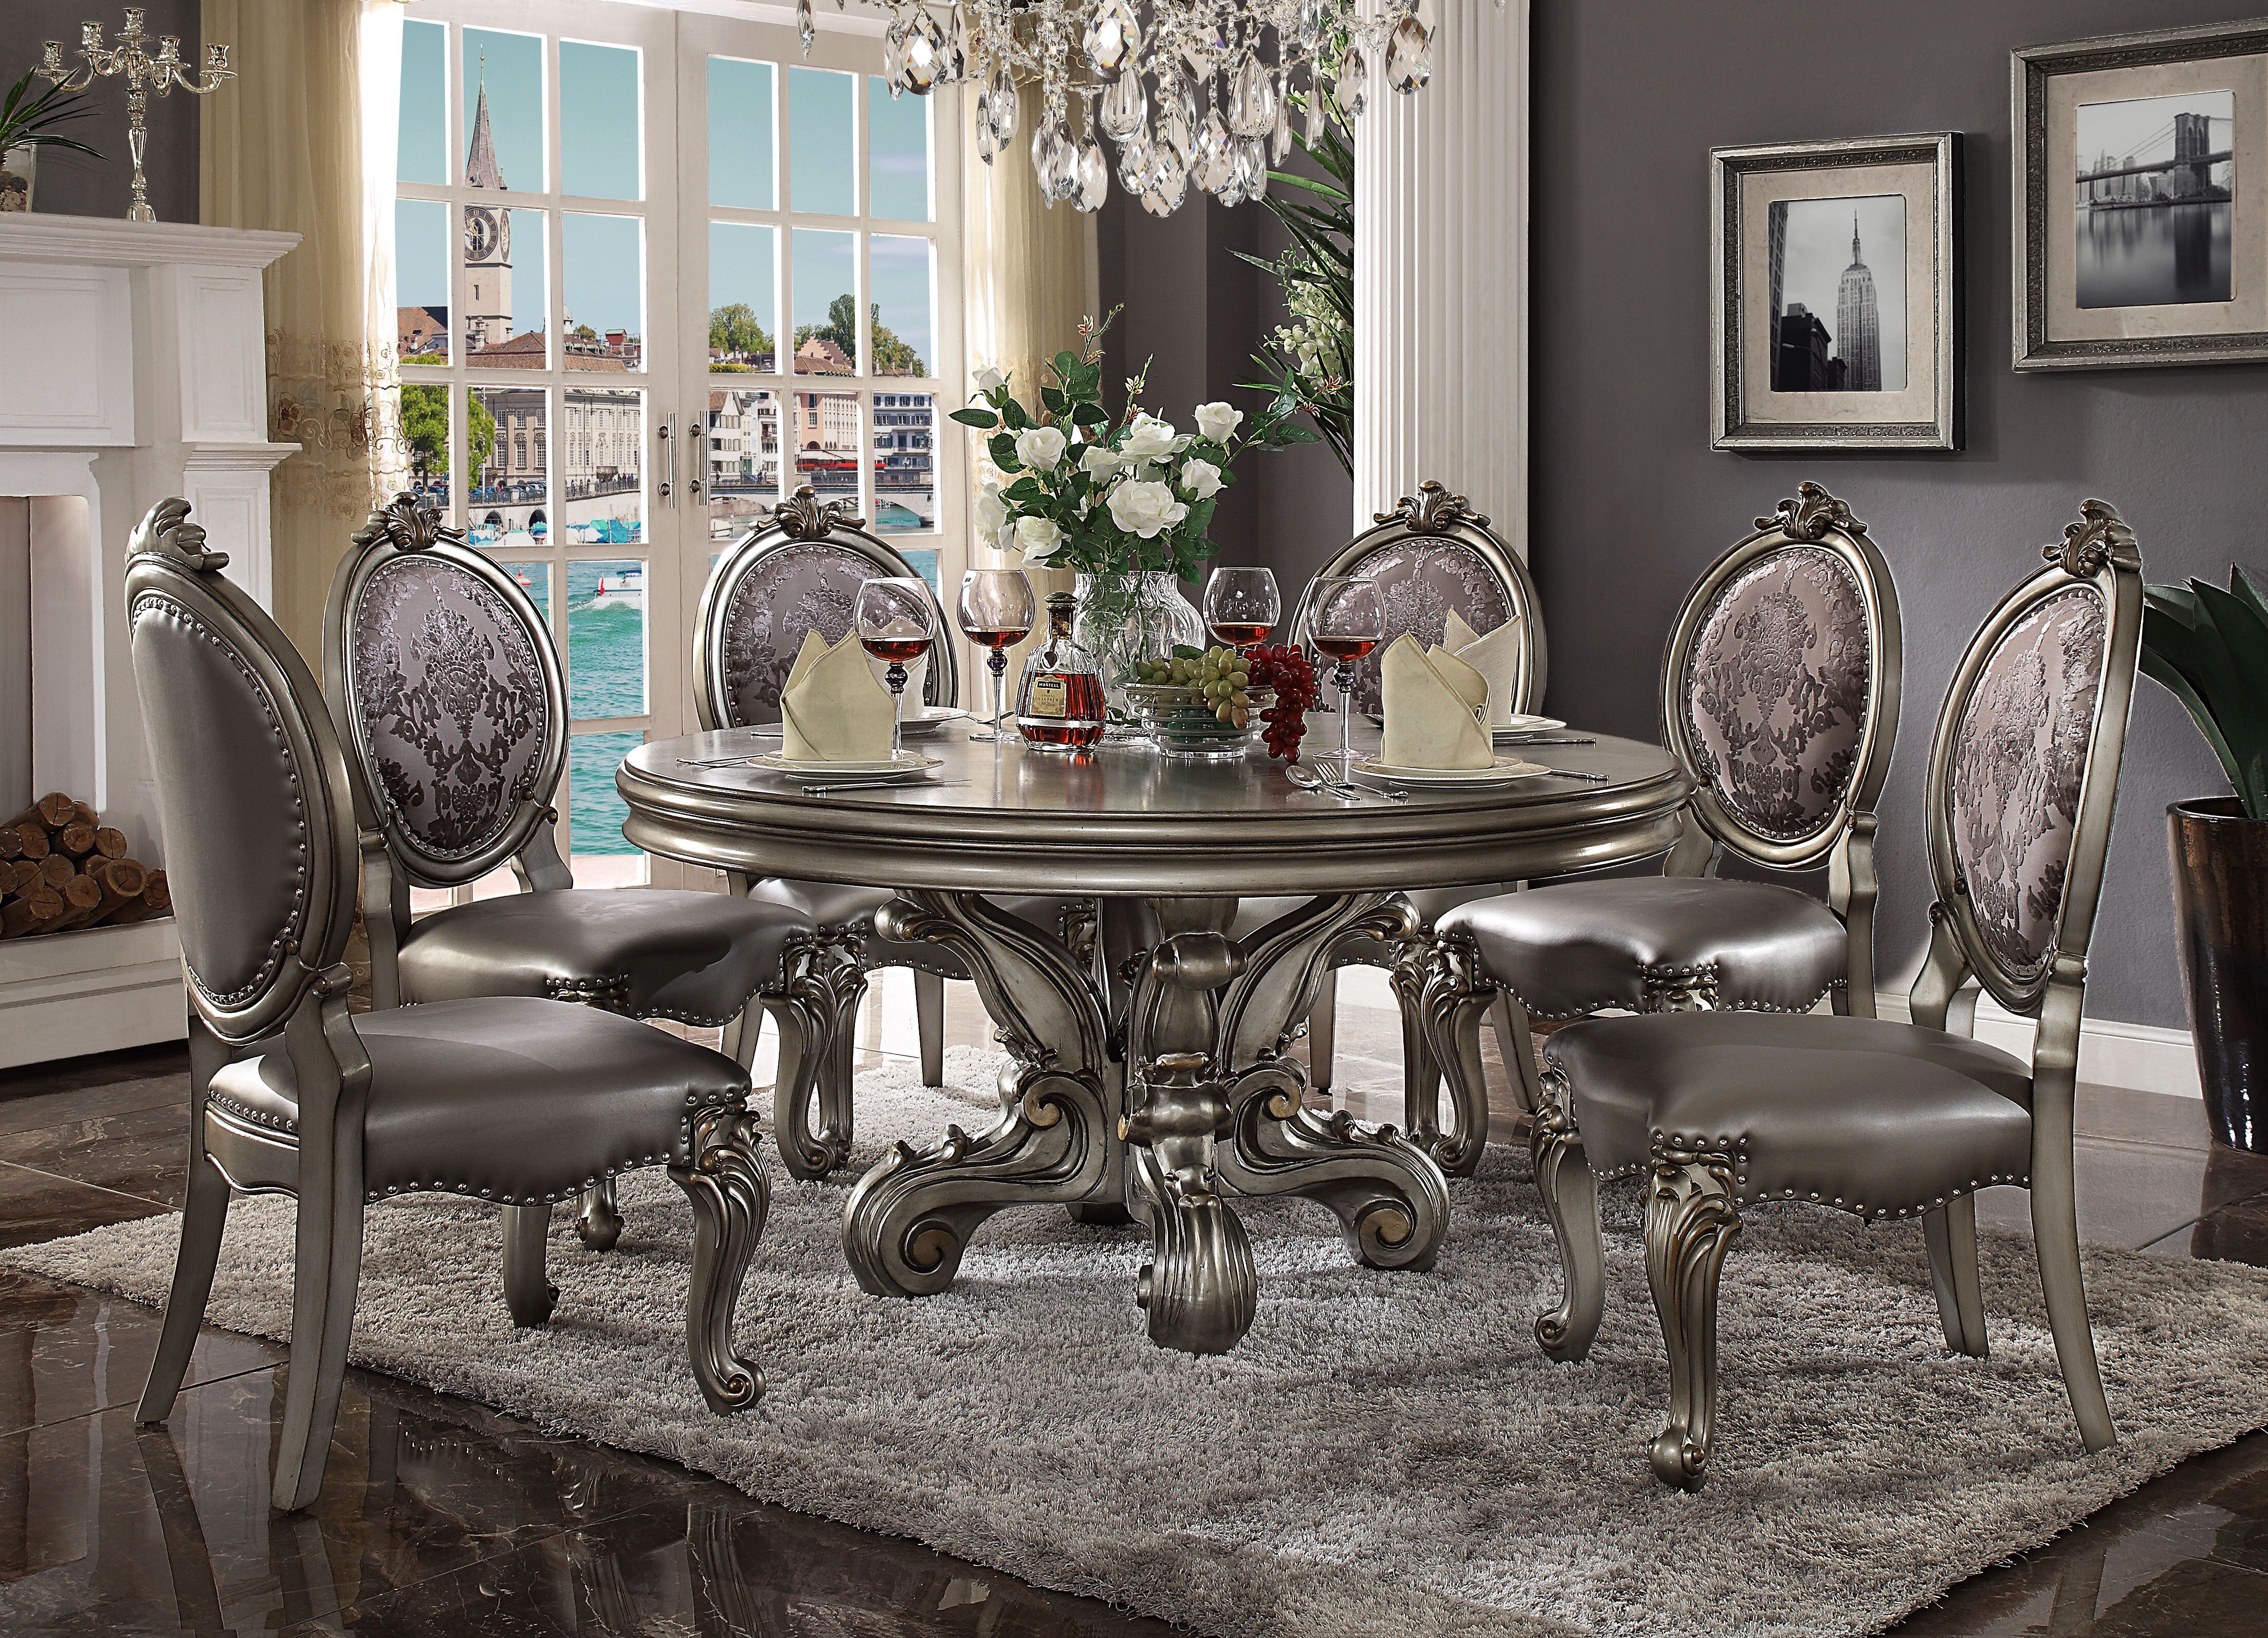 Andrewhomestudio Medley Round Dining Table With 6 Chairs